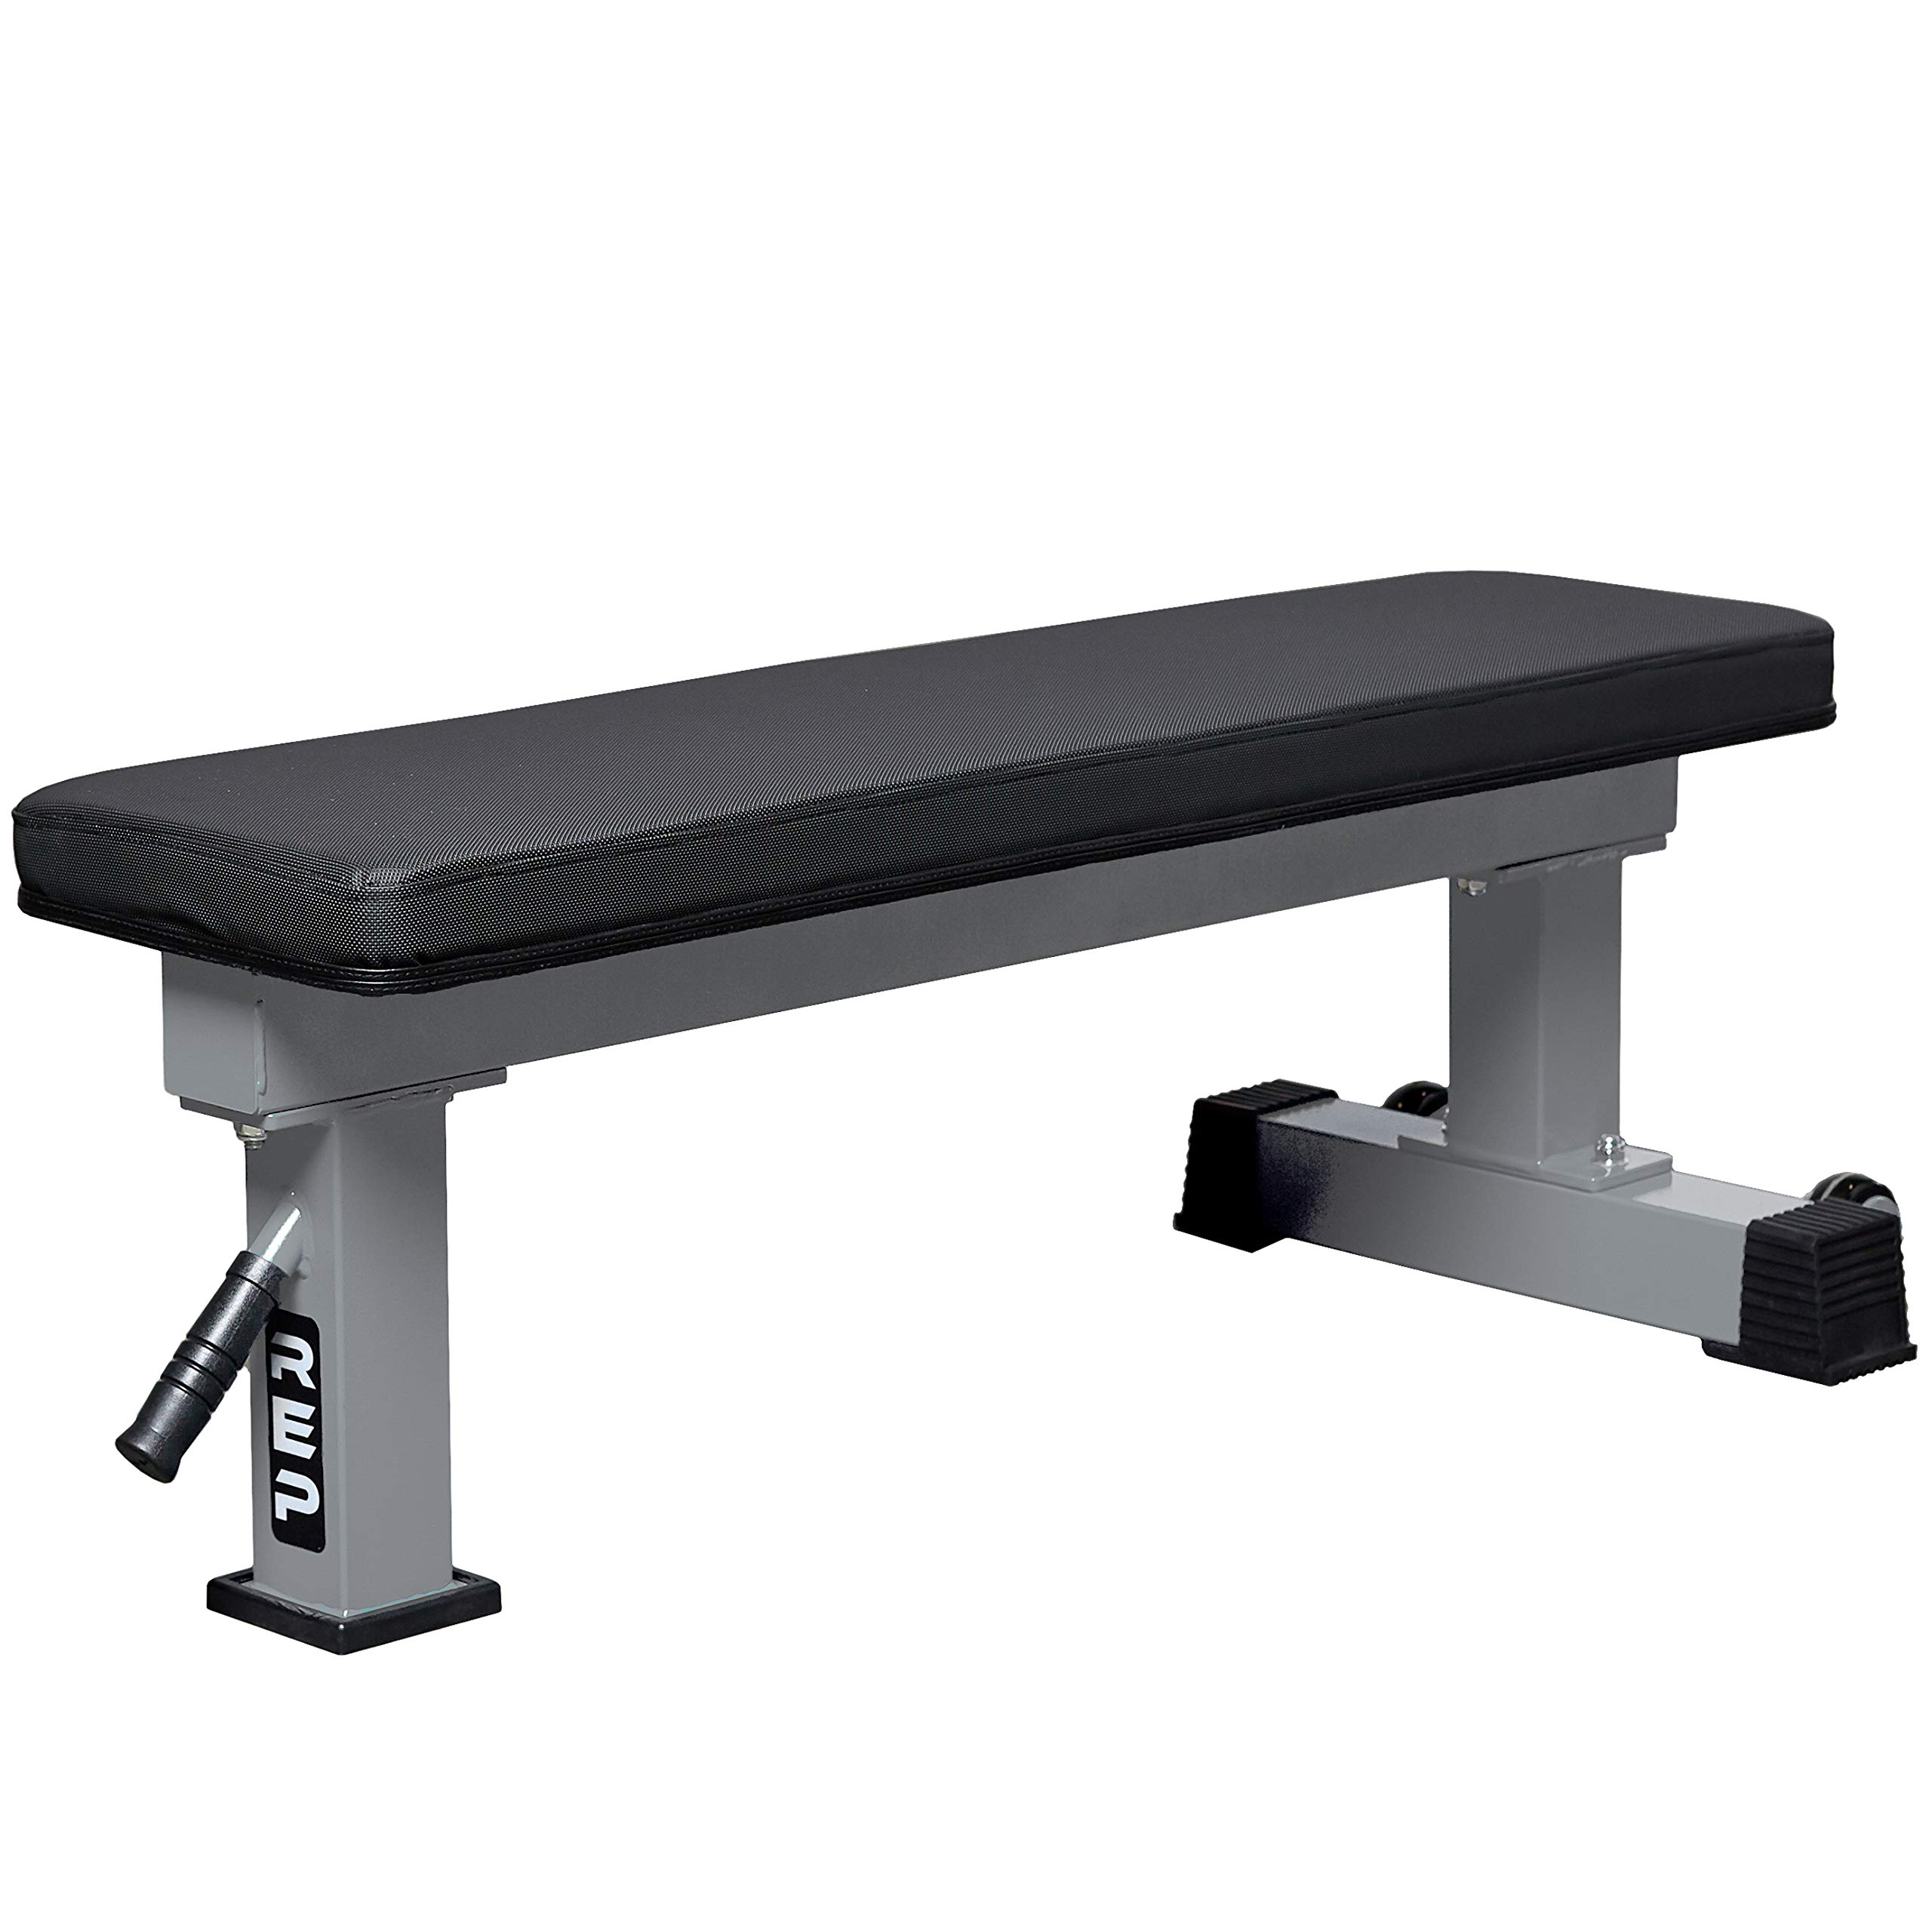 REP FITNESS FB-4000 Competition Light Flat Bench - Silver by REP FITNESS